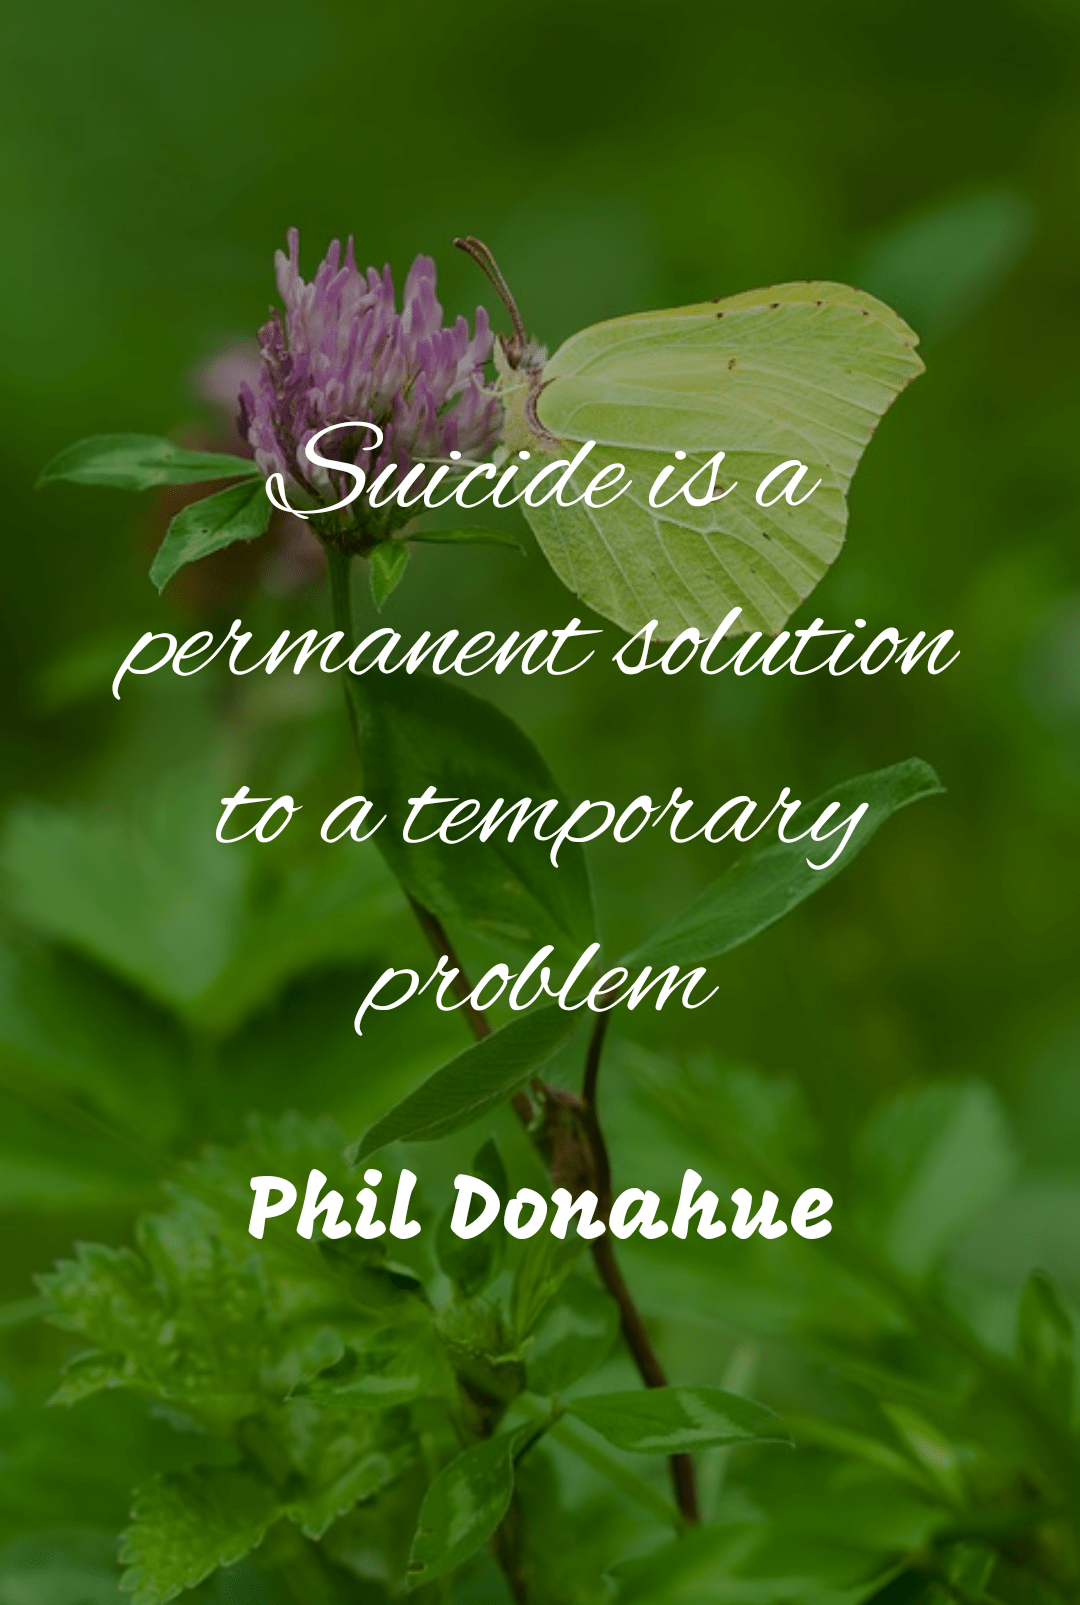 Phil Donahue https://inspirational.ly